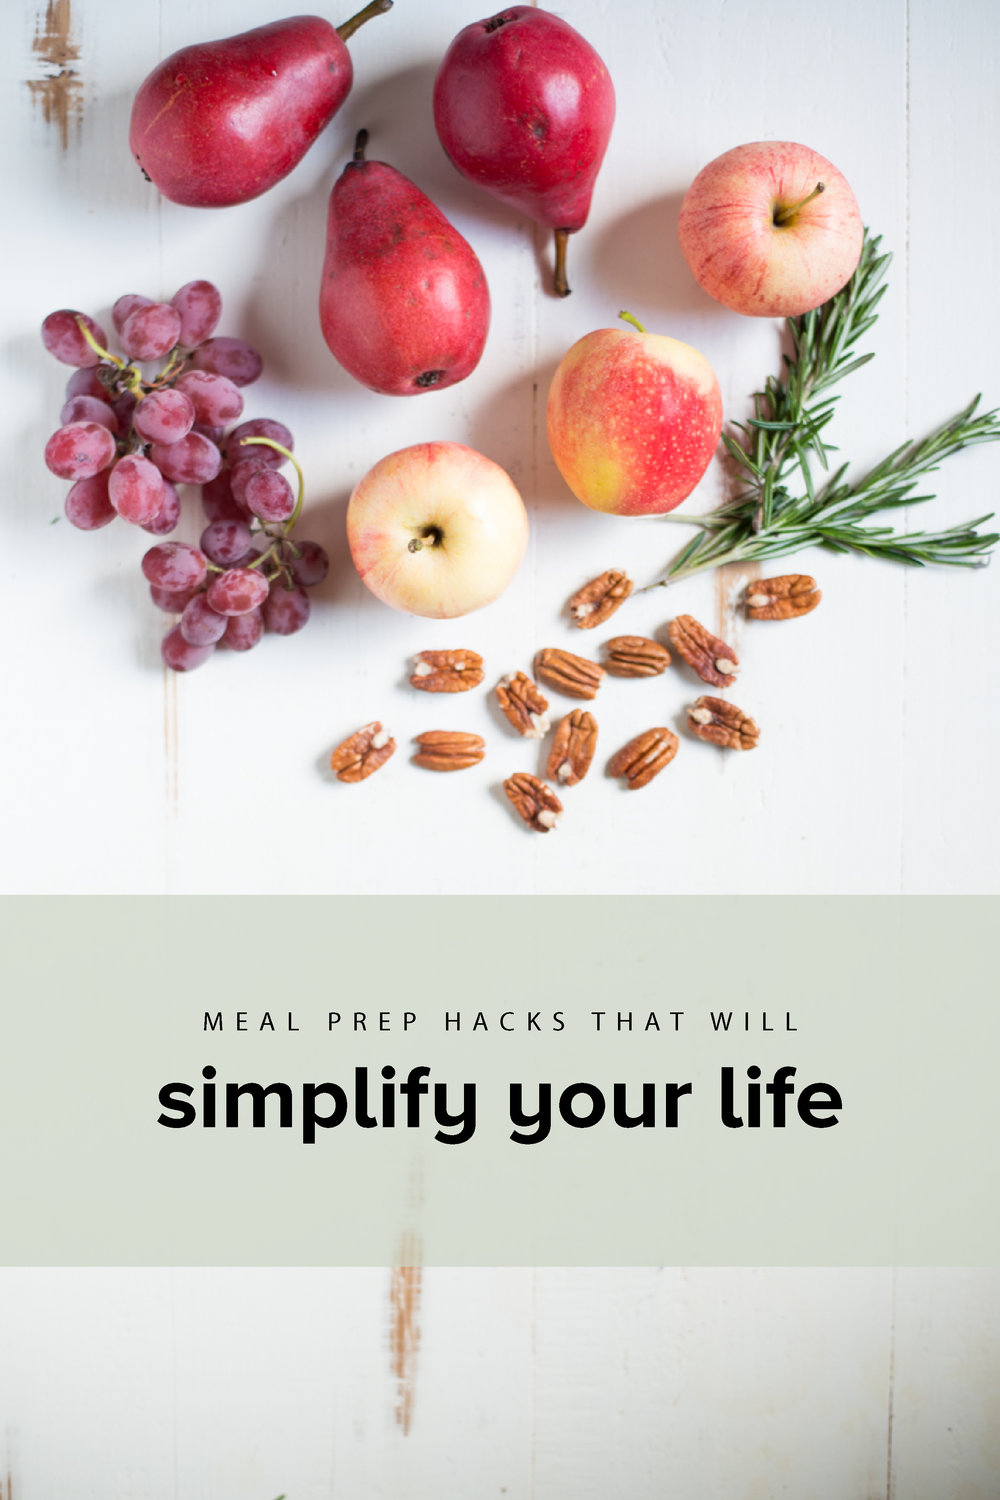 Essential meal prep hacks that will simplify your life. Streamlined meal prep tips and tricks to help you save time and prep efficiently. #realfoodwholelife #realfoodwholelifemealprep #mealprep #healthymealprep #mealpreptips #mealpreprecipes #minimalism #simplification